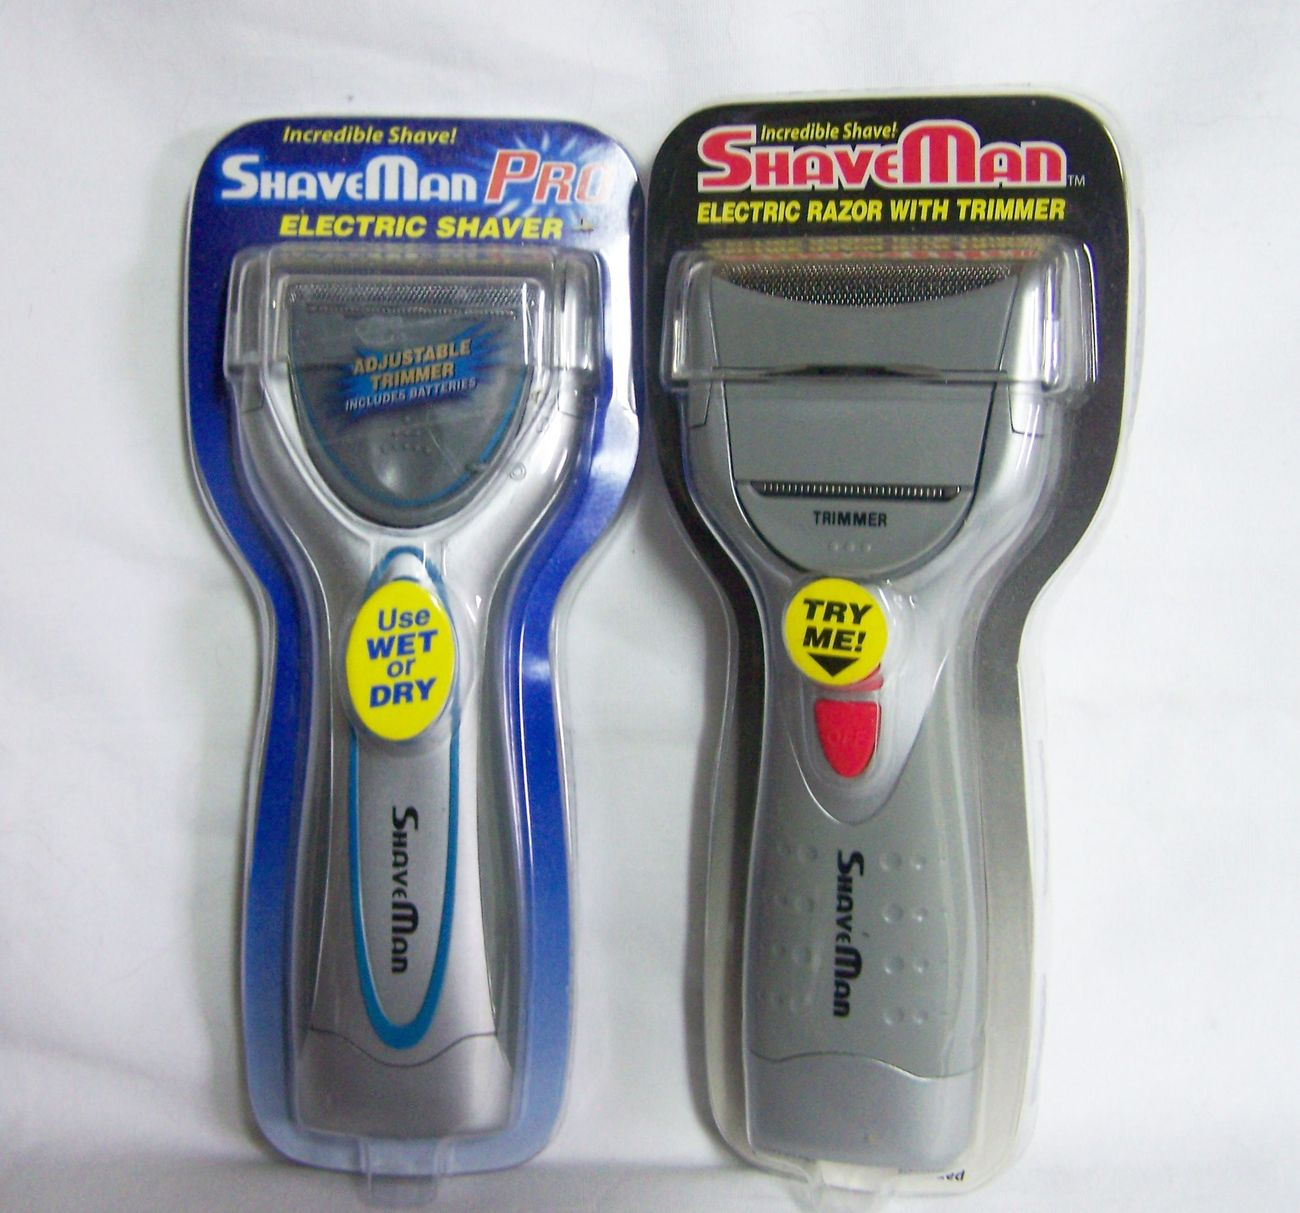 2 New Shaveman Electric Shavers With And 50 Similar Items Panasonic Es Rw30 Rechargeable Shaver Flexible Pivoting Head Shave1